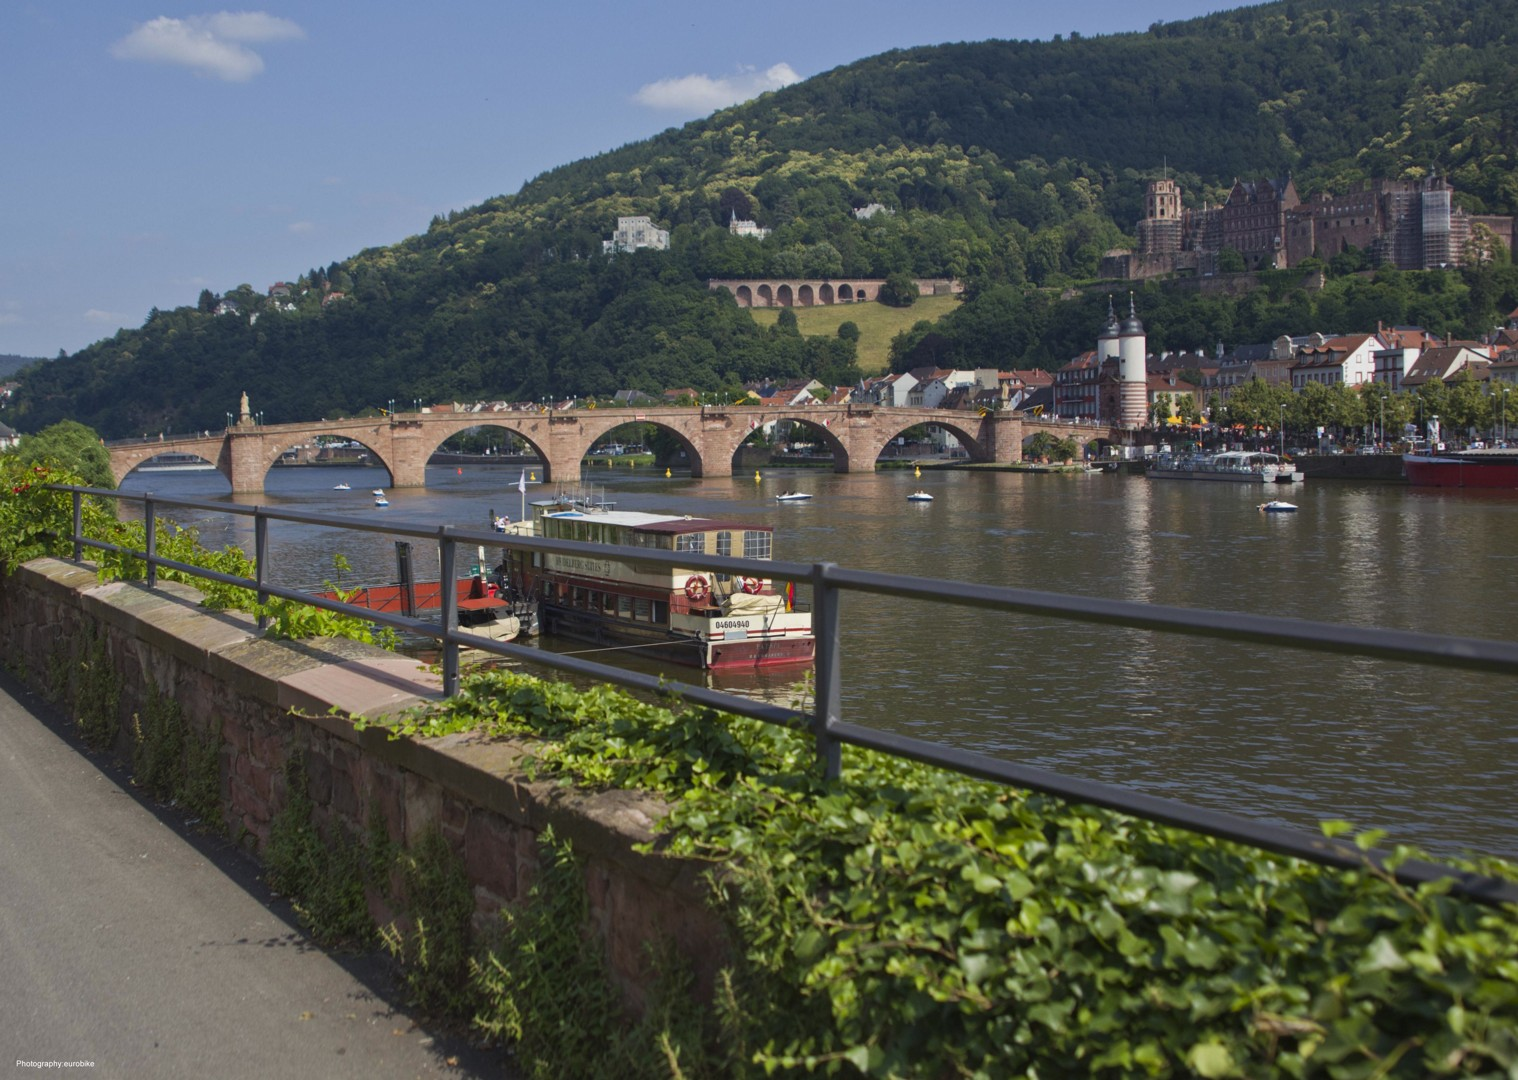 leisure-cycling-holiday-radweg-strassburg-mainz-heidelberg-neckar.jpg - Germany and France - The Rhine Valley - Self-Guided Leisure Cycling Holiday - Leisure Cycling